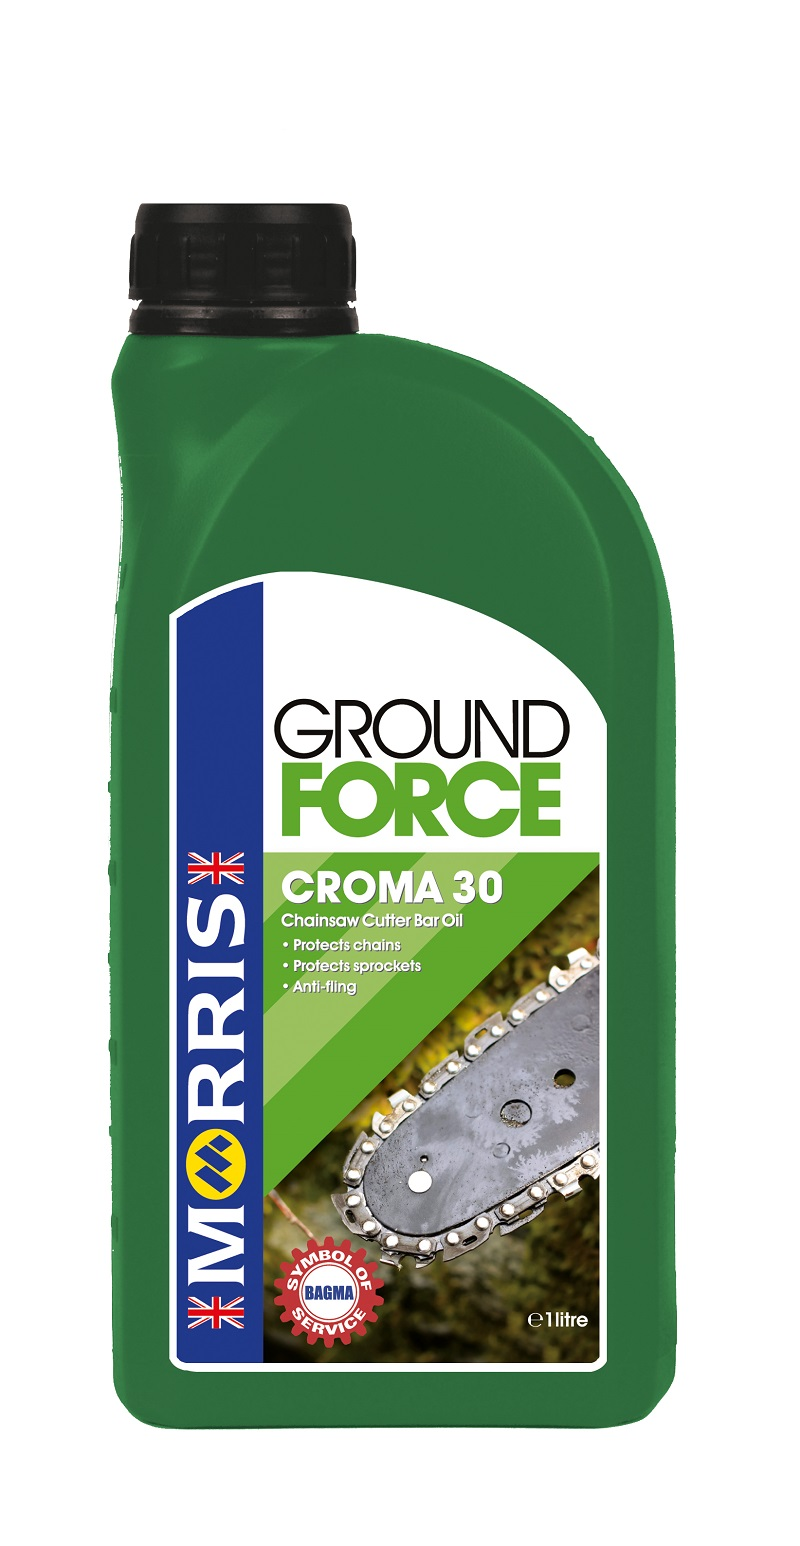 Chain Saw Oil : Ground force croma chain saw oil